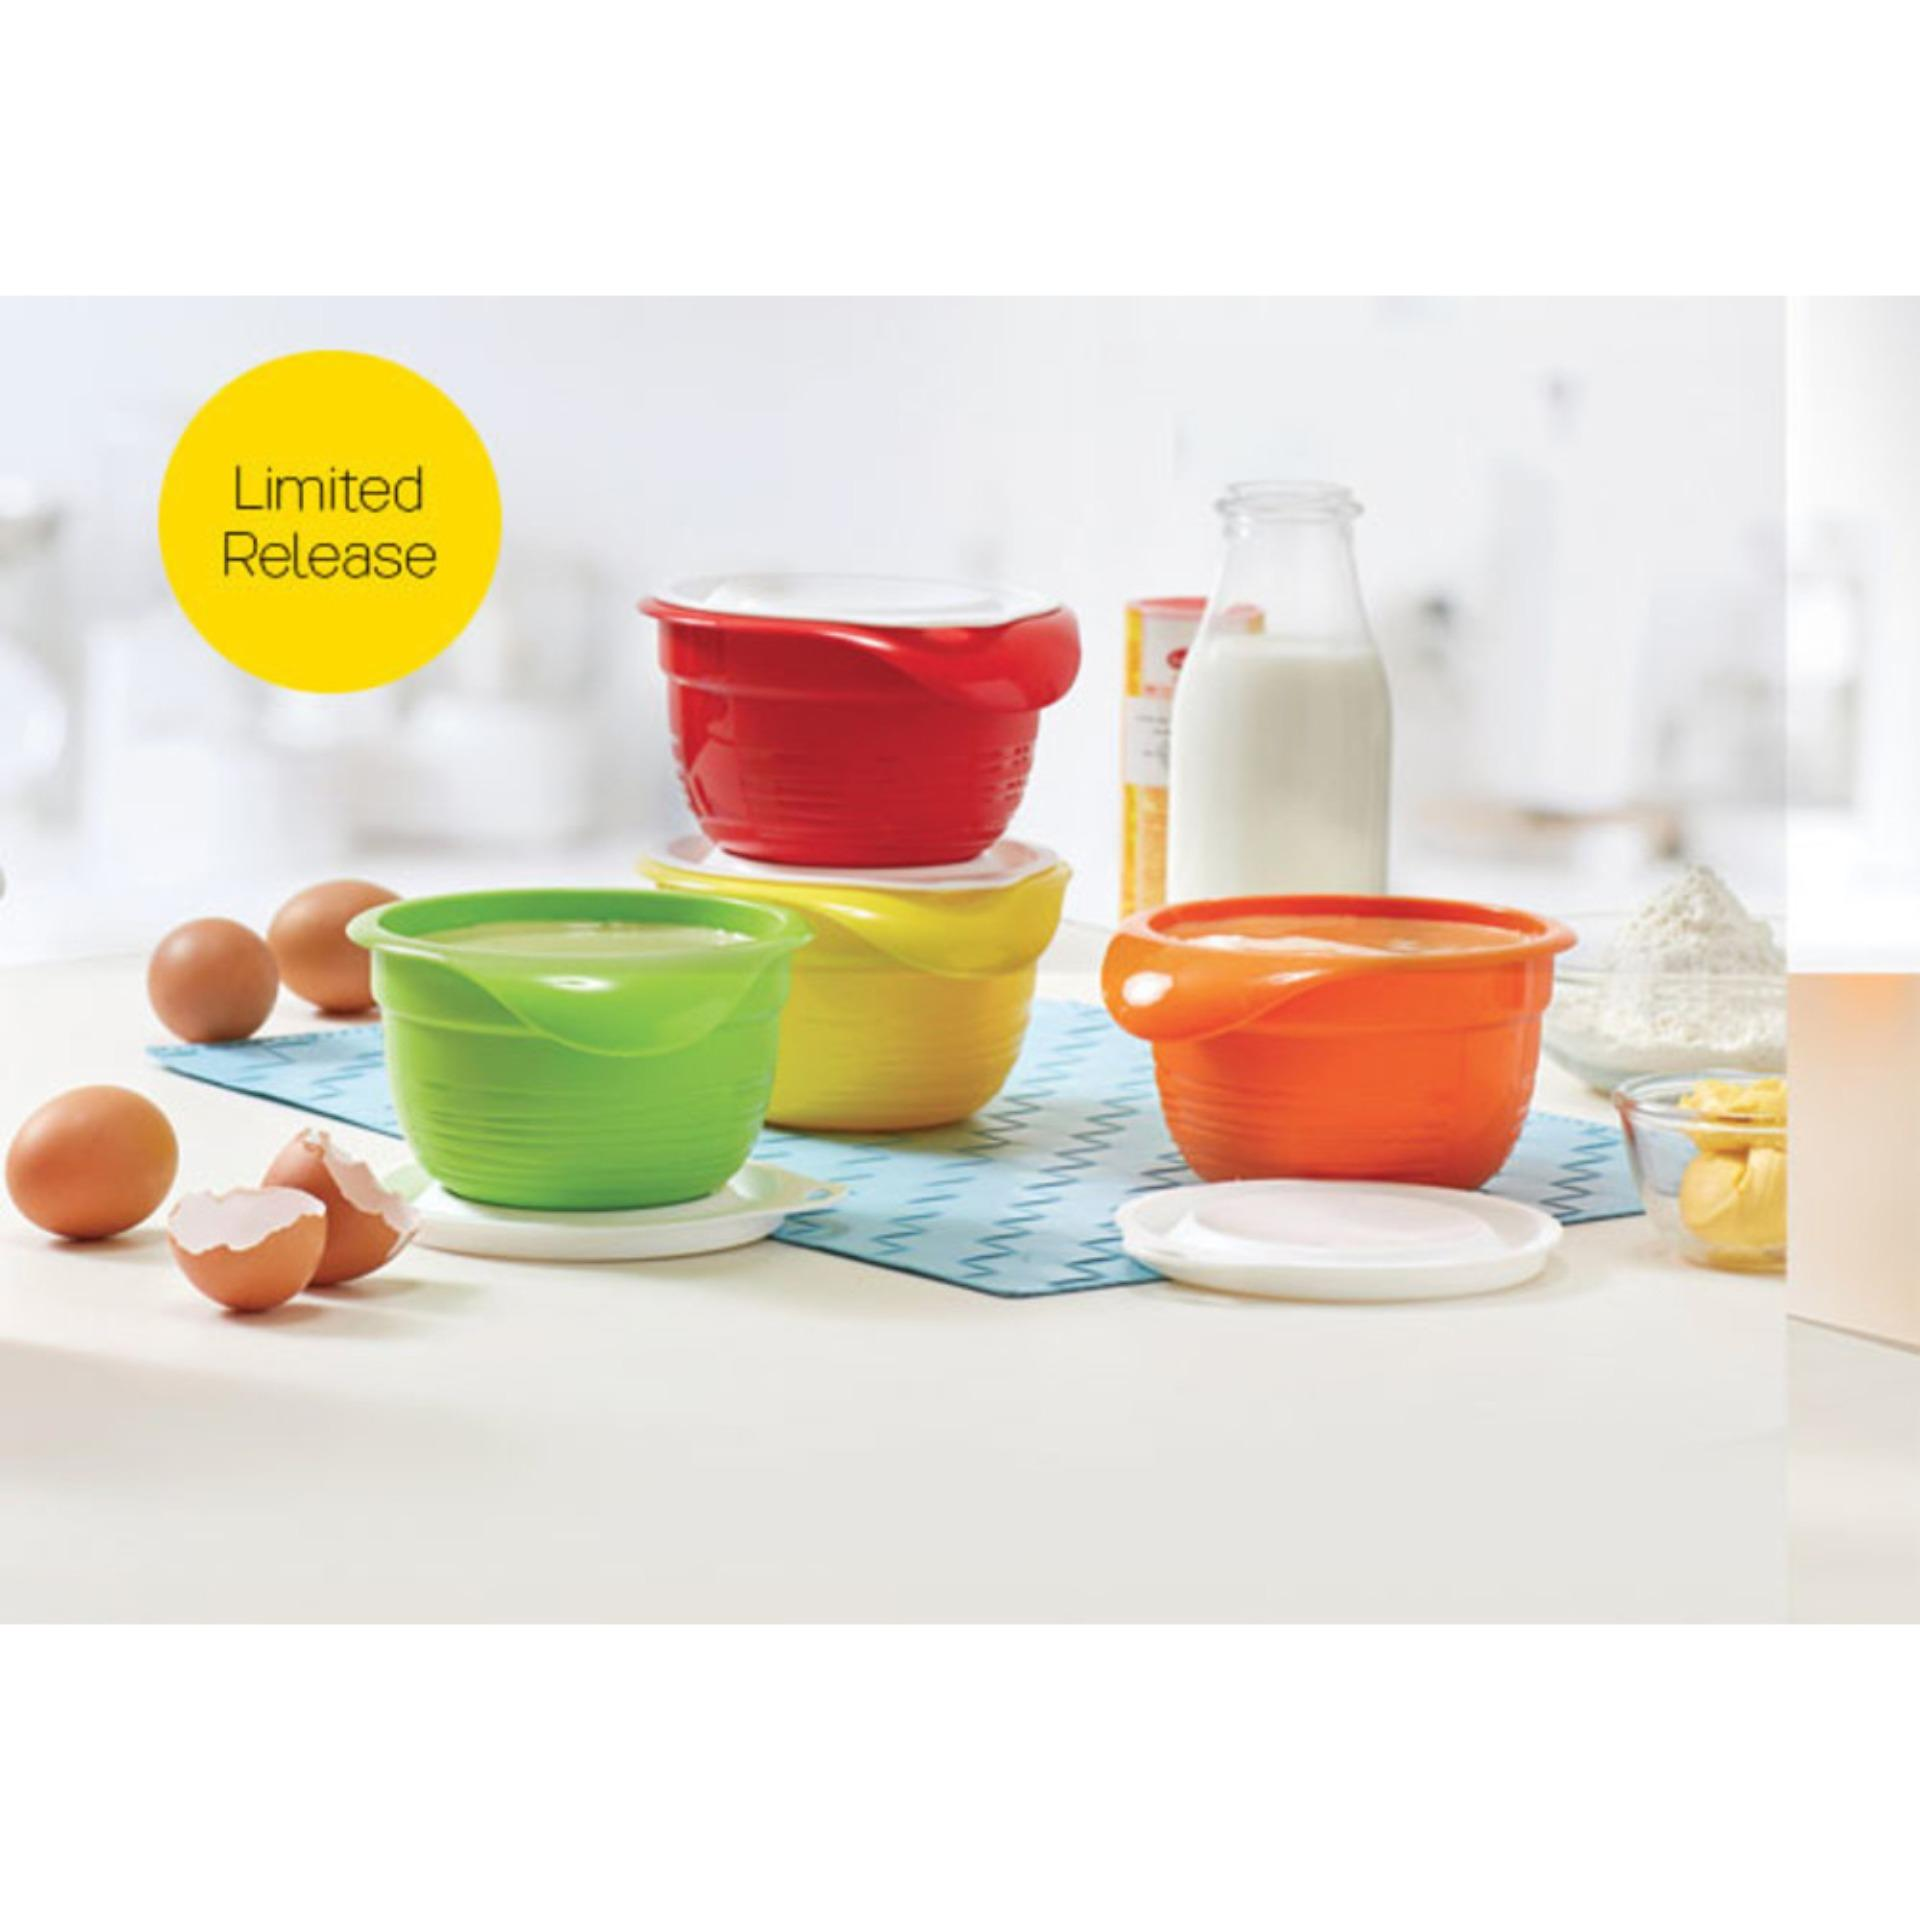 Fitur Set Of 4 Reusable Silicone Bowl Covers And Food Stretch Lids Consina 200ml Tupperware Versa